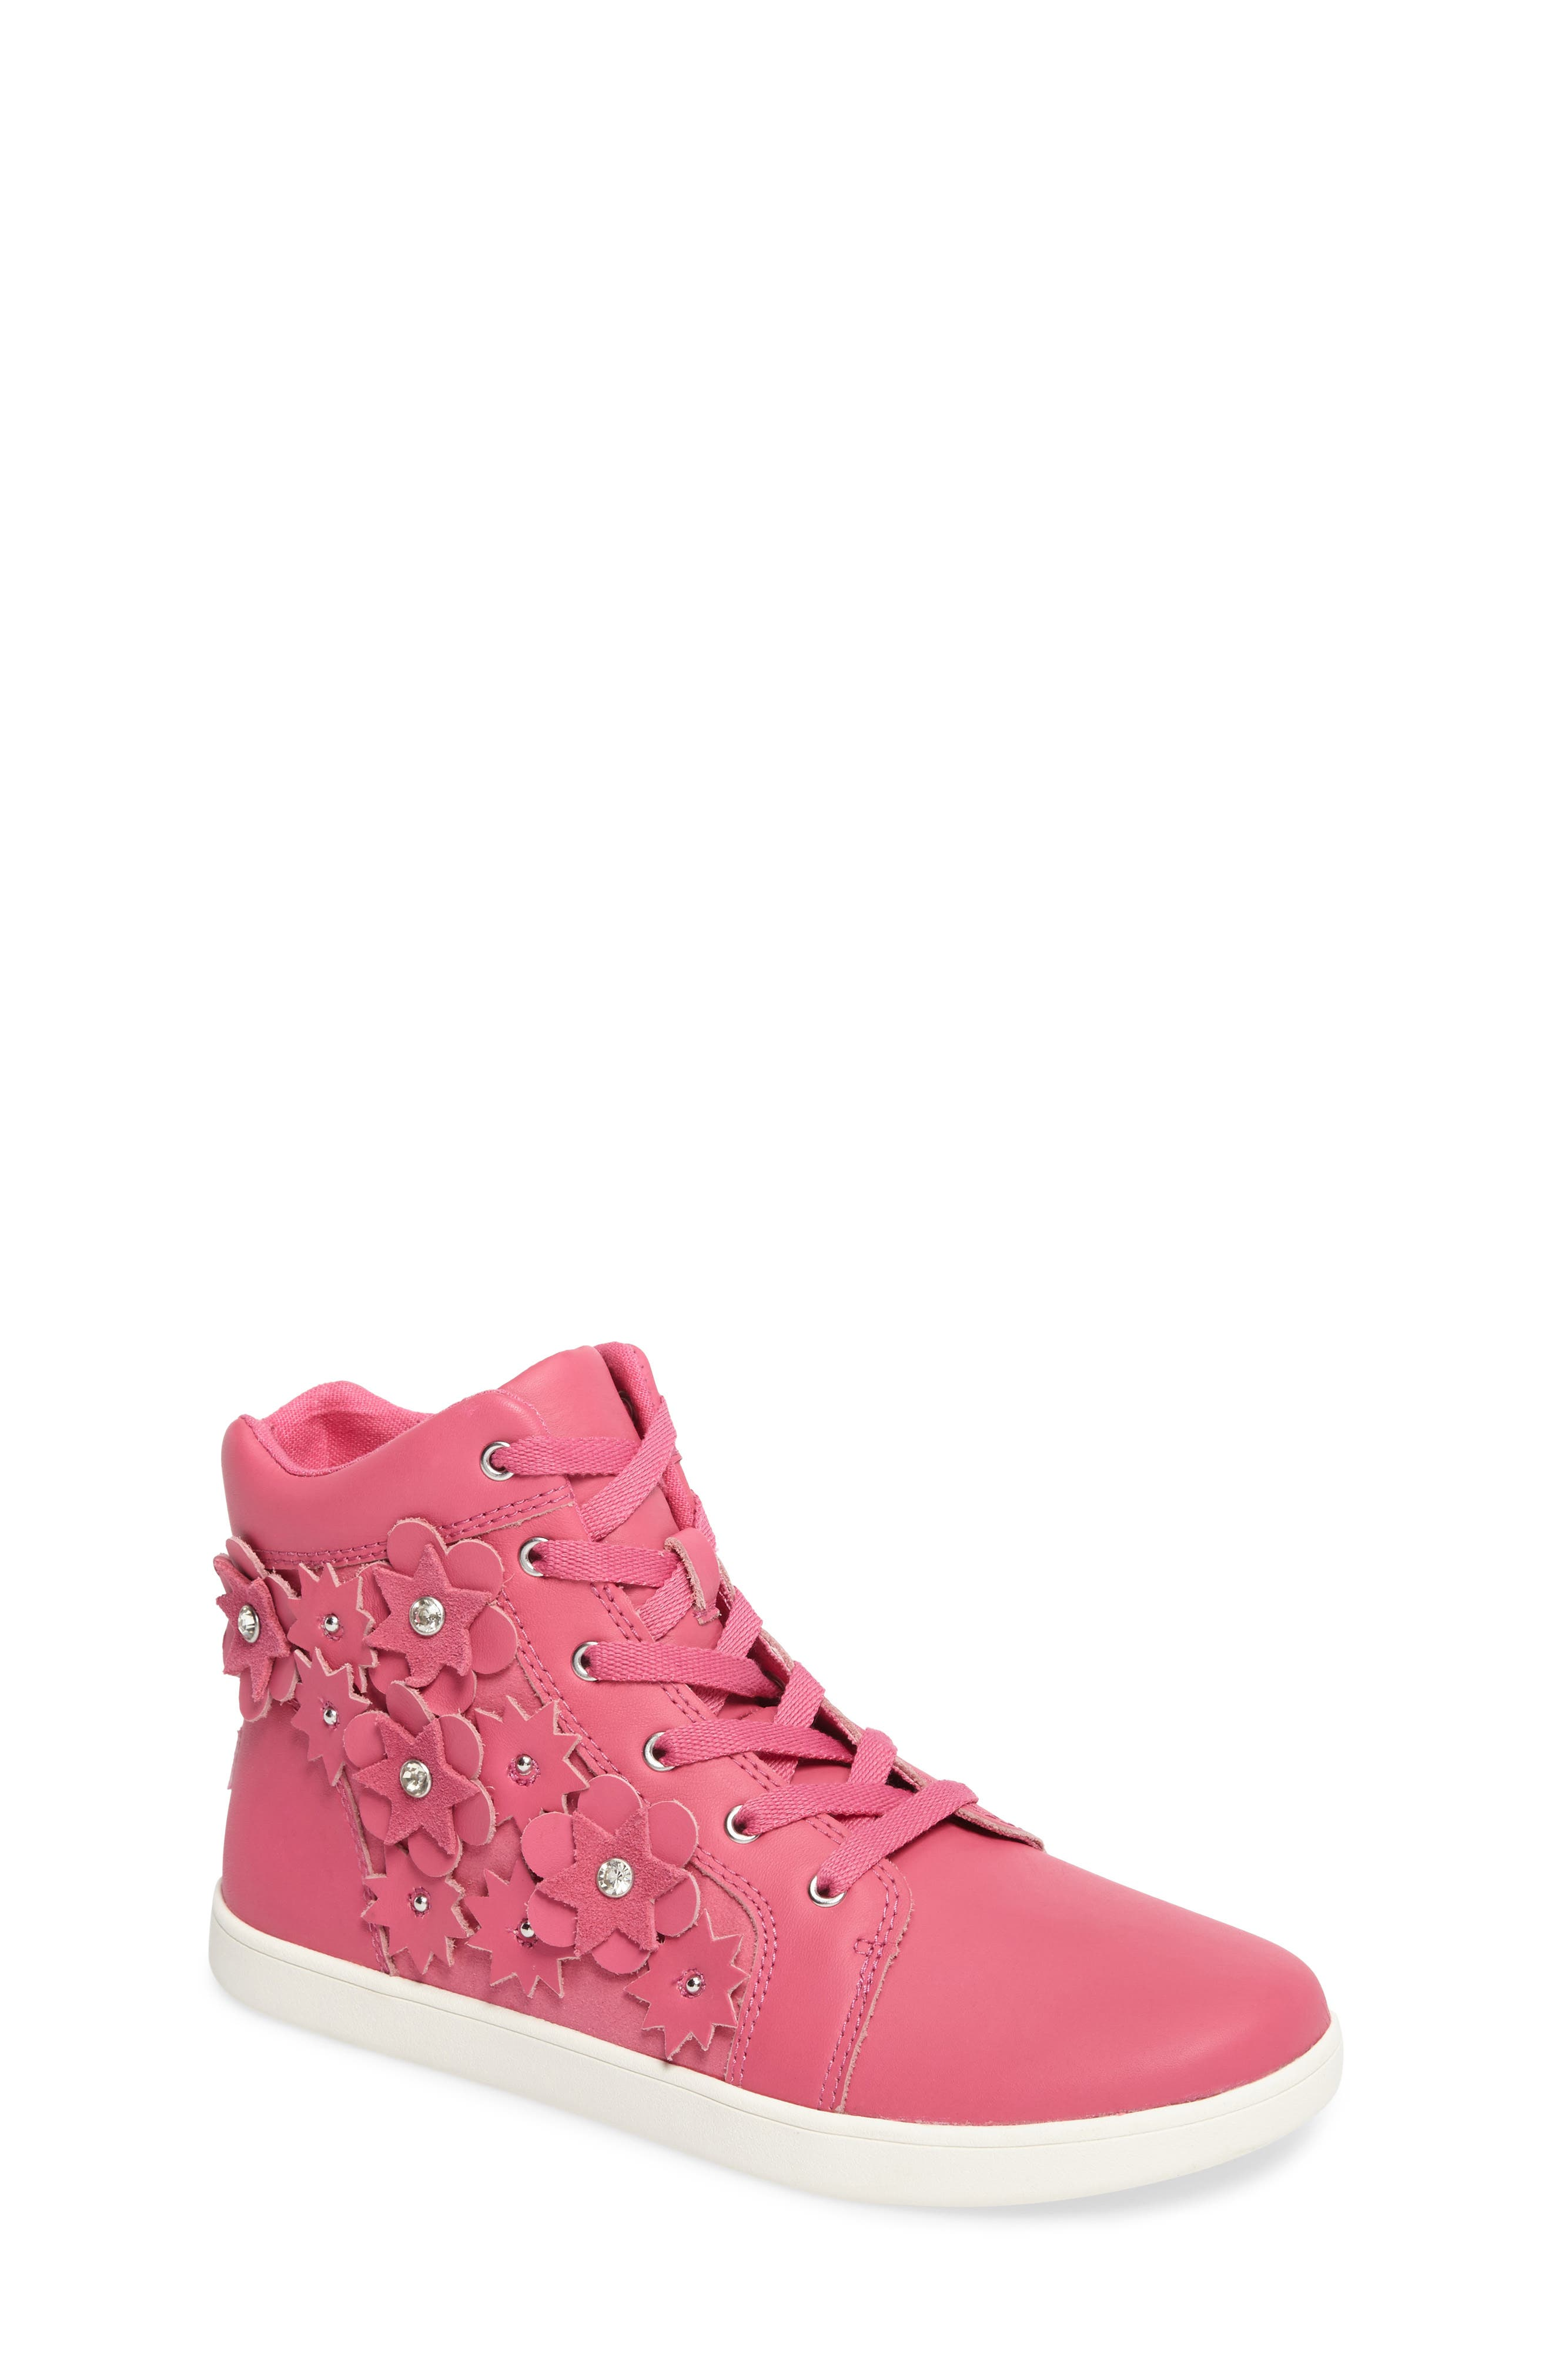 Main Image - UGG® Schyler Petal Embellished High Top Sneaker (Little Kid & Big Kid)